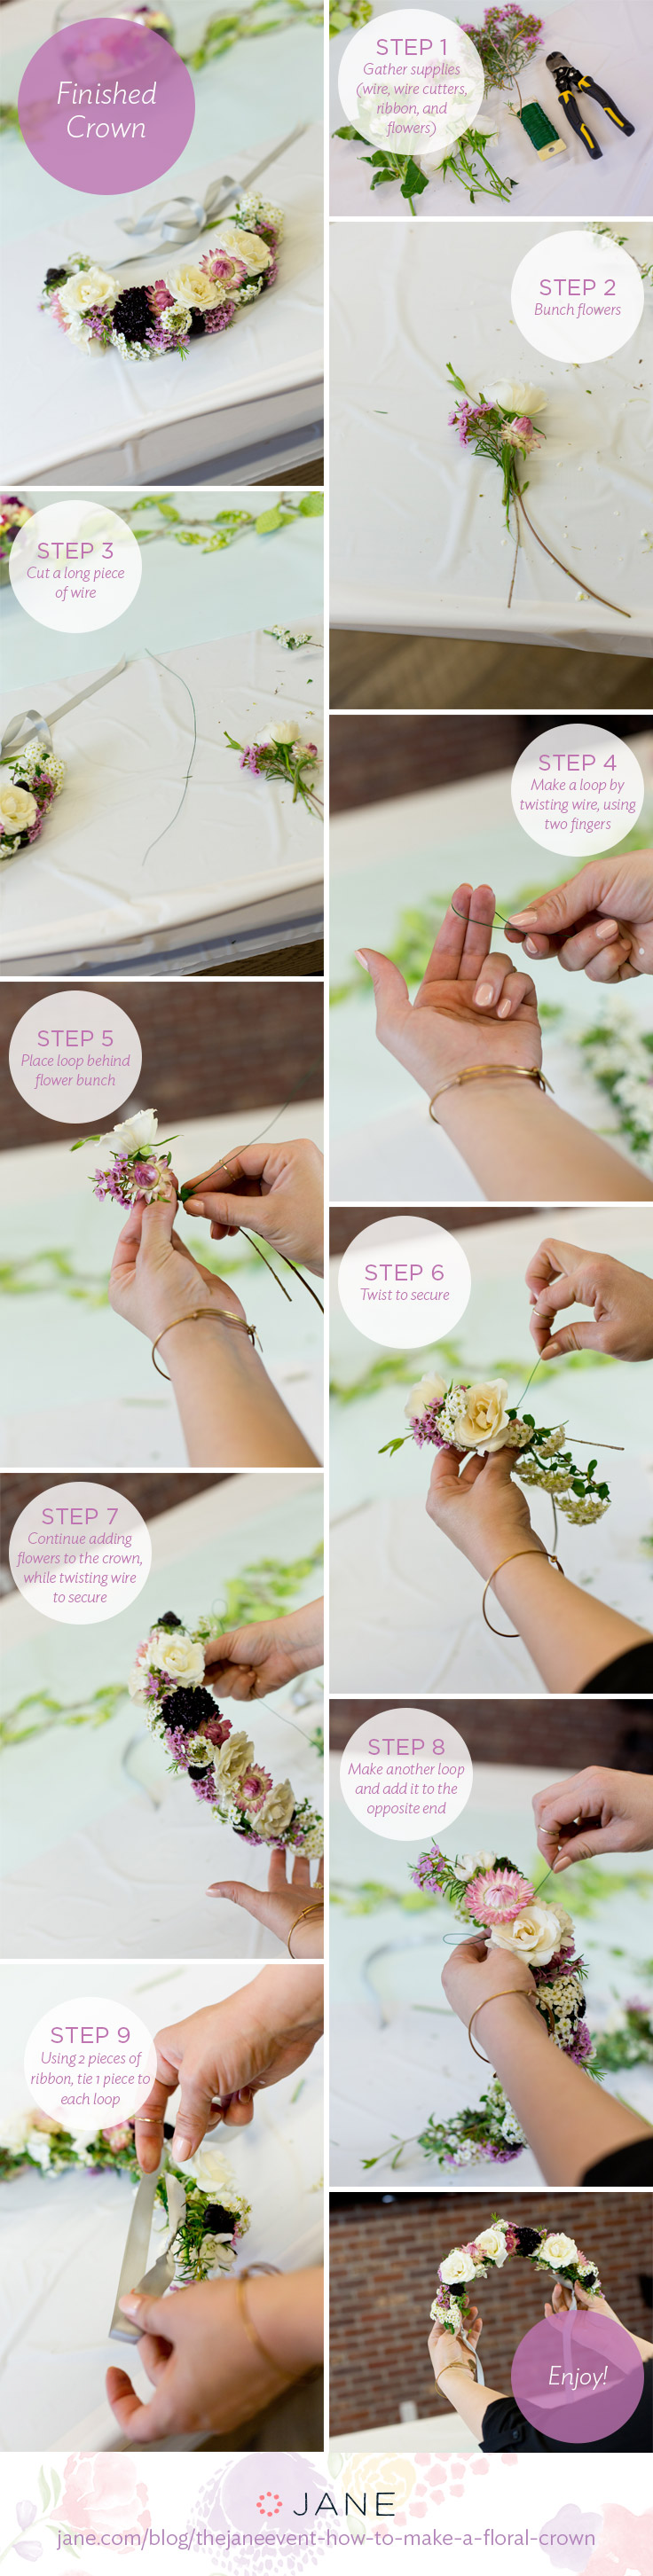 Thejaneevent how to make a floral crown jane blog jane blog jane thejaneevent how to make a floral crown izmirmasajfo